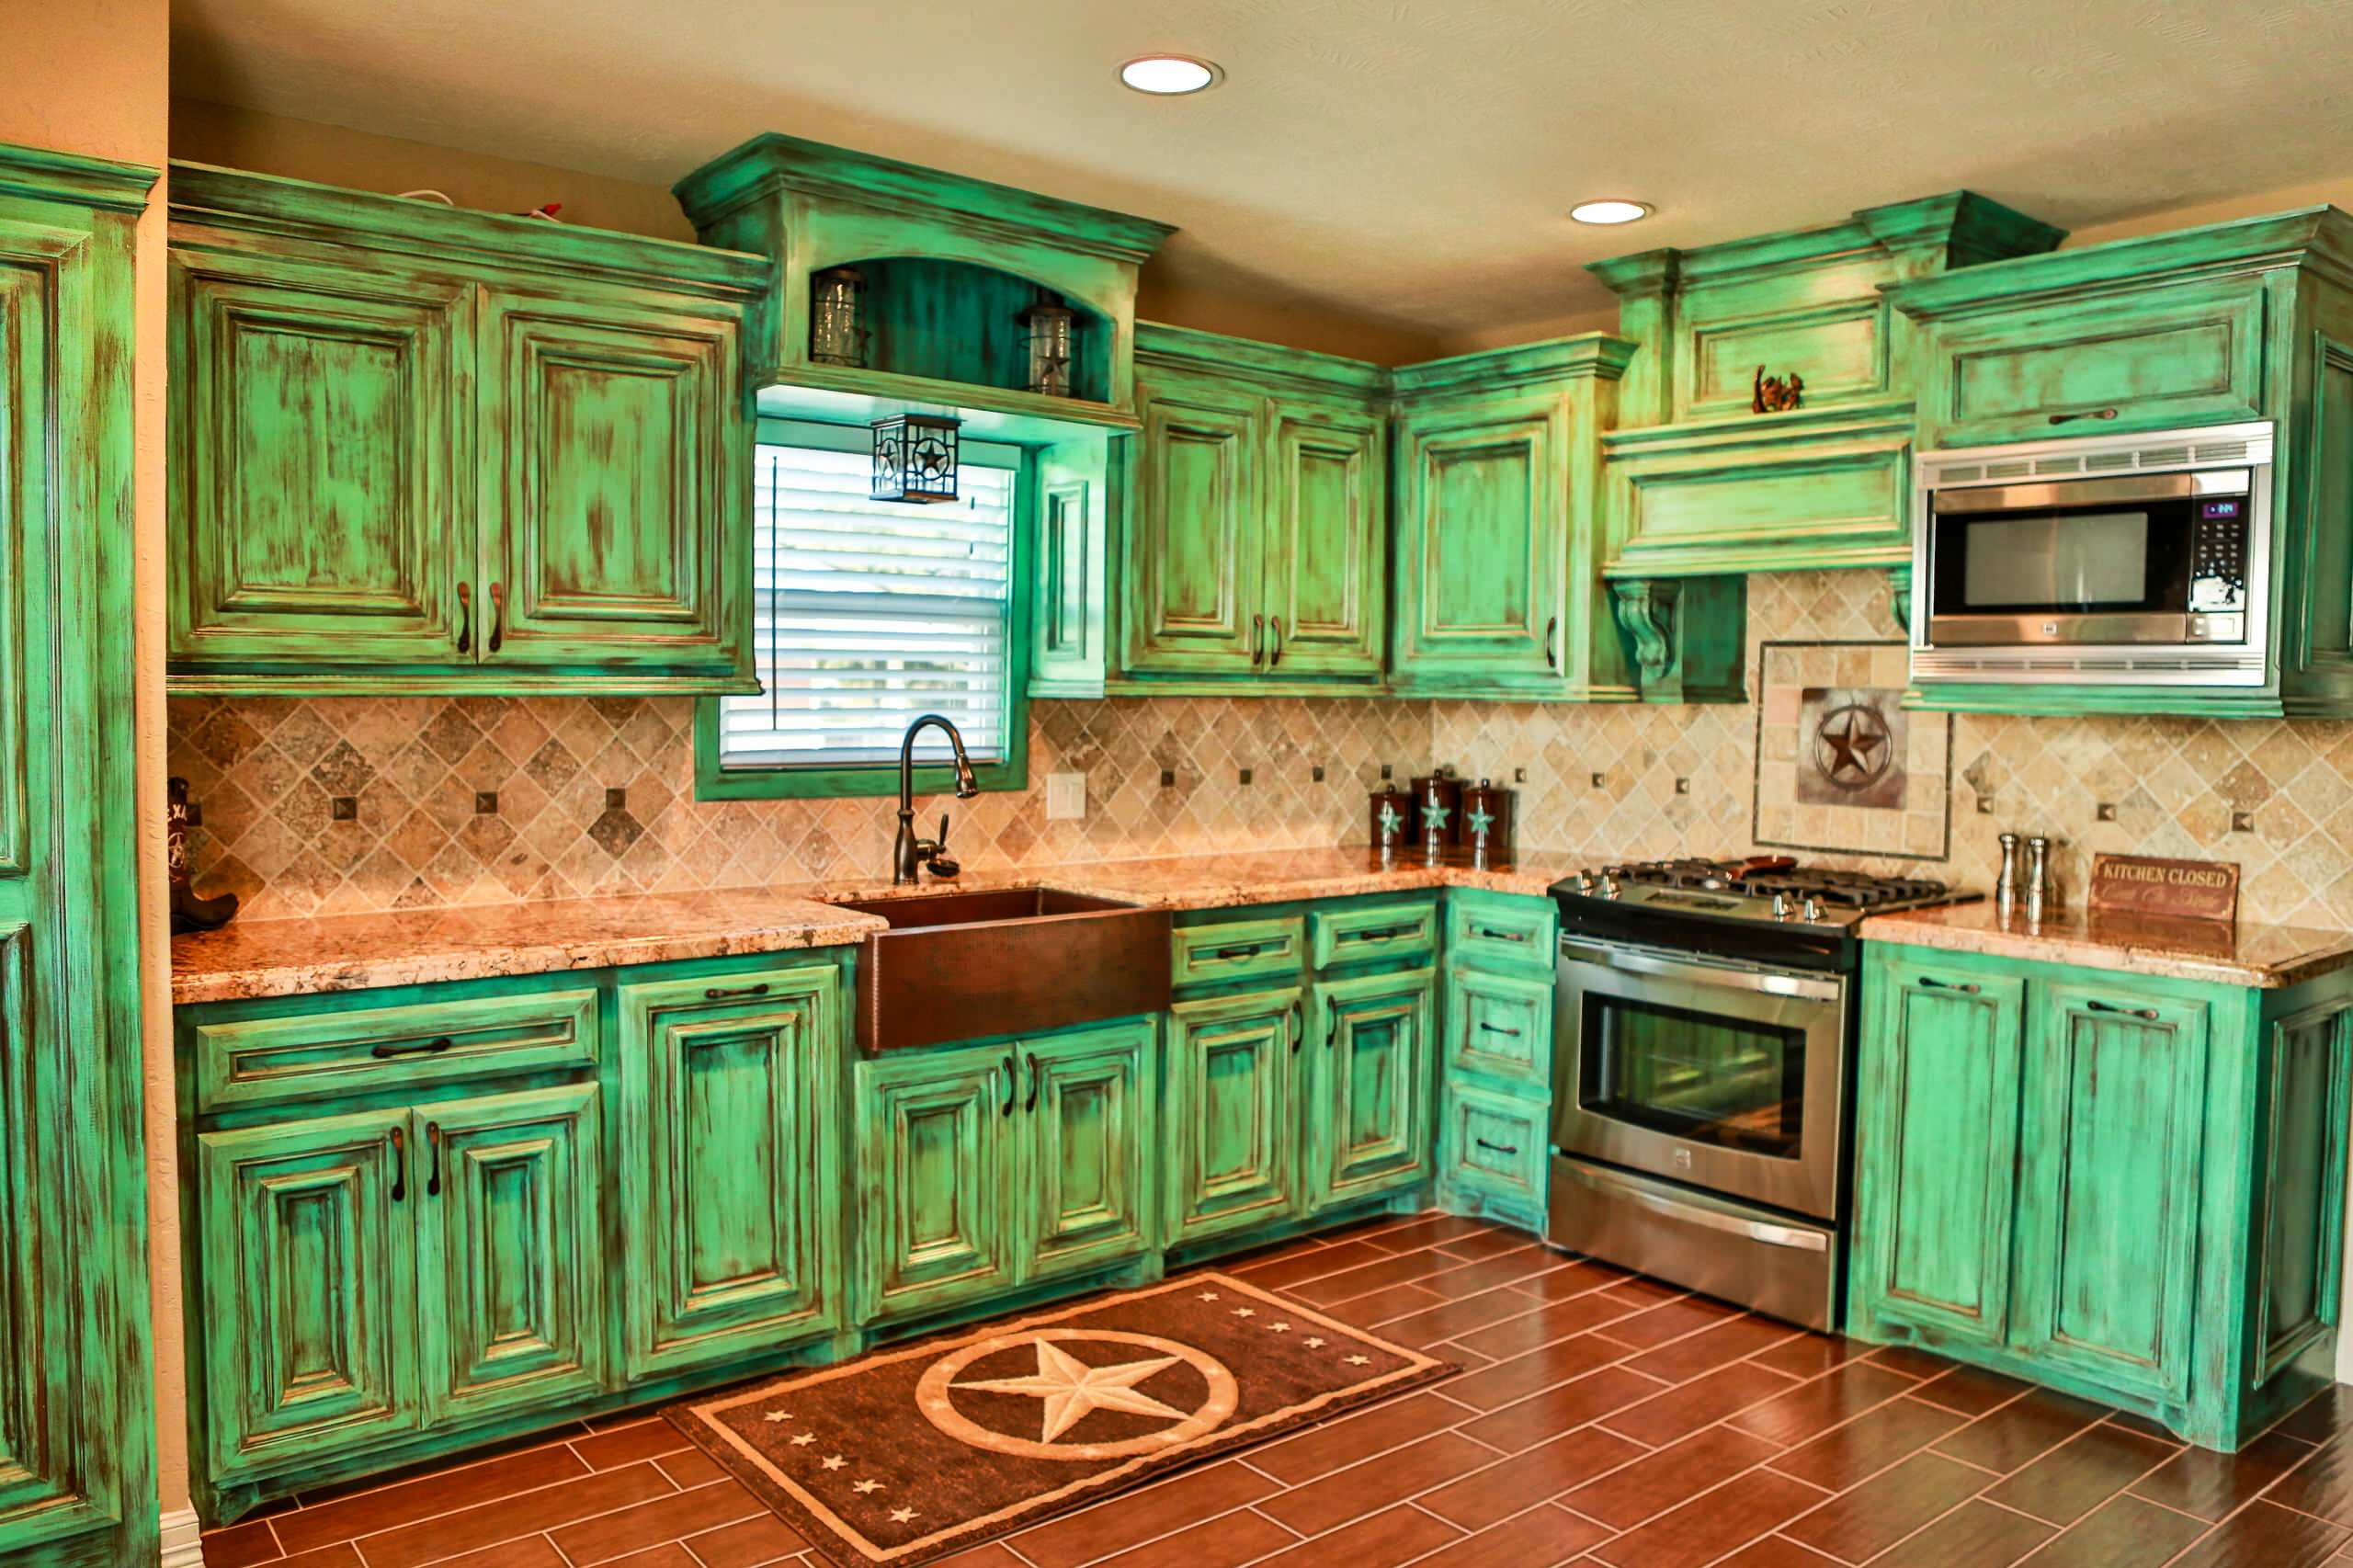 green-ugly-kitchen-remodel-old-cabinets